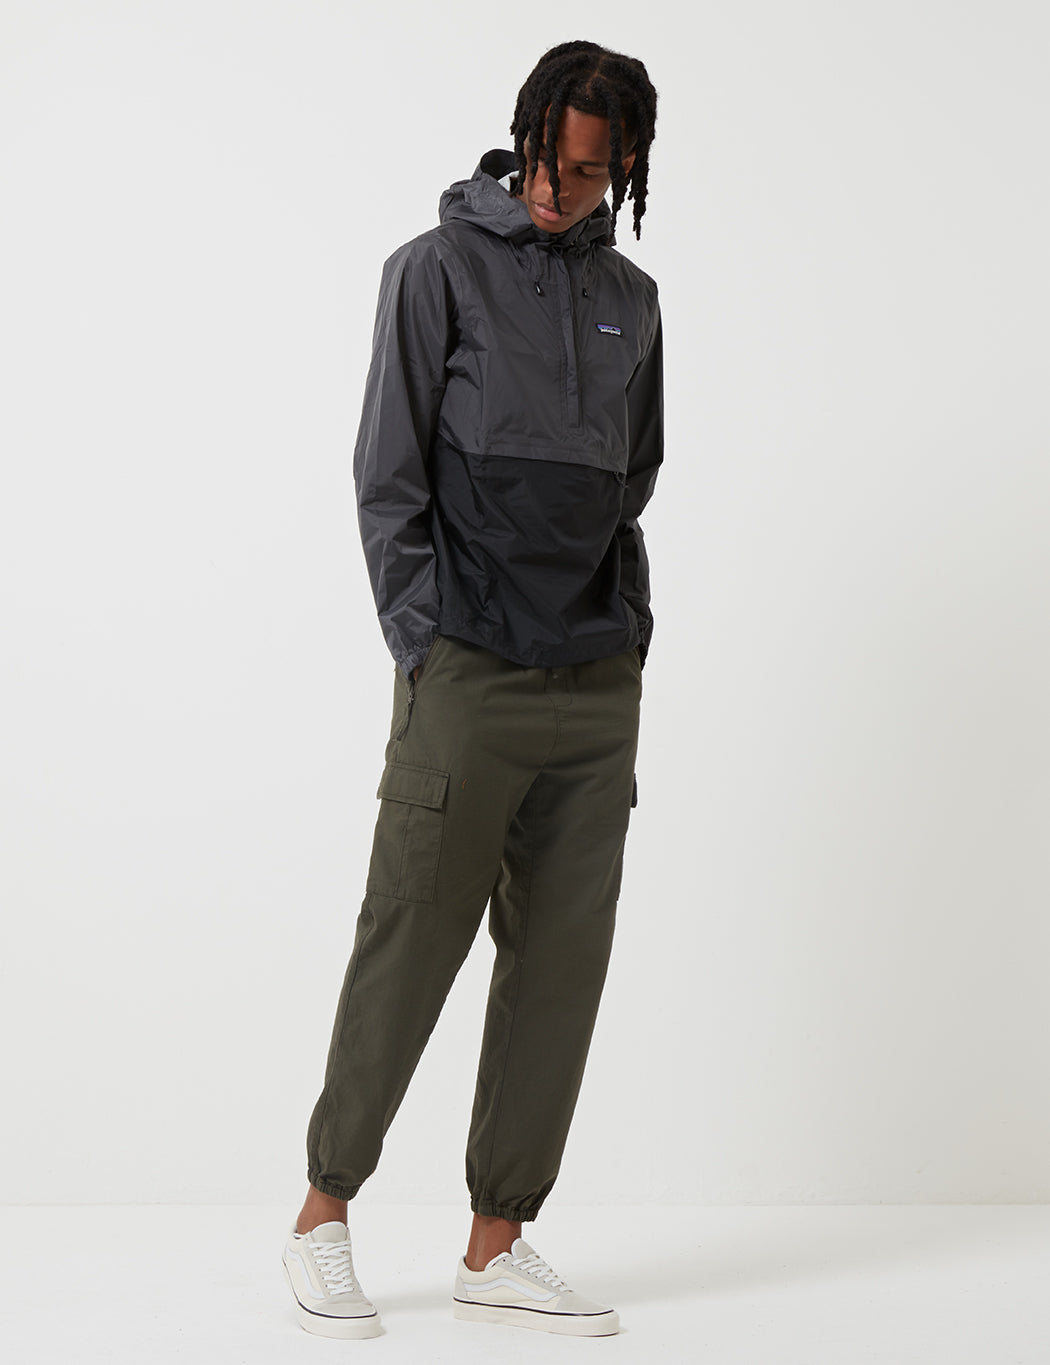 Patagonia Torrentshell Pullover - Forge Grey/Black